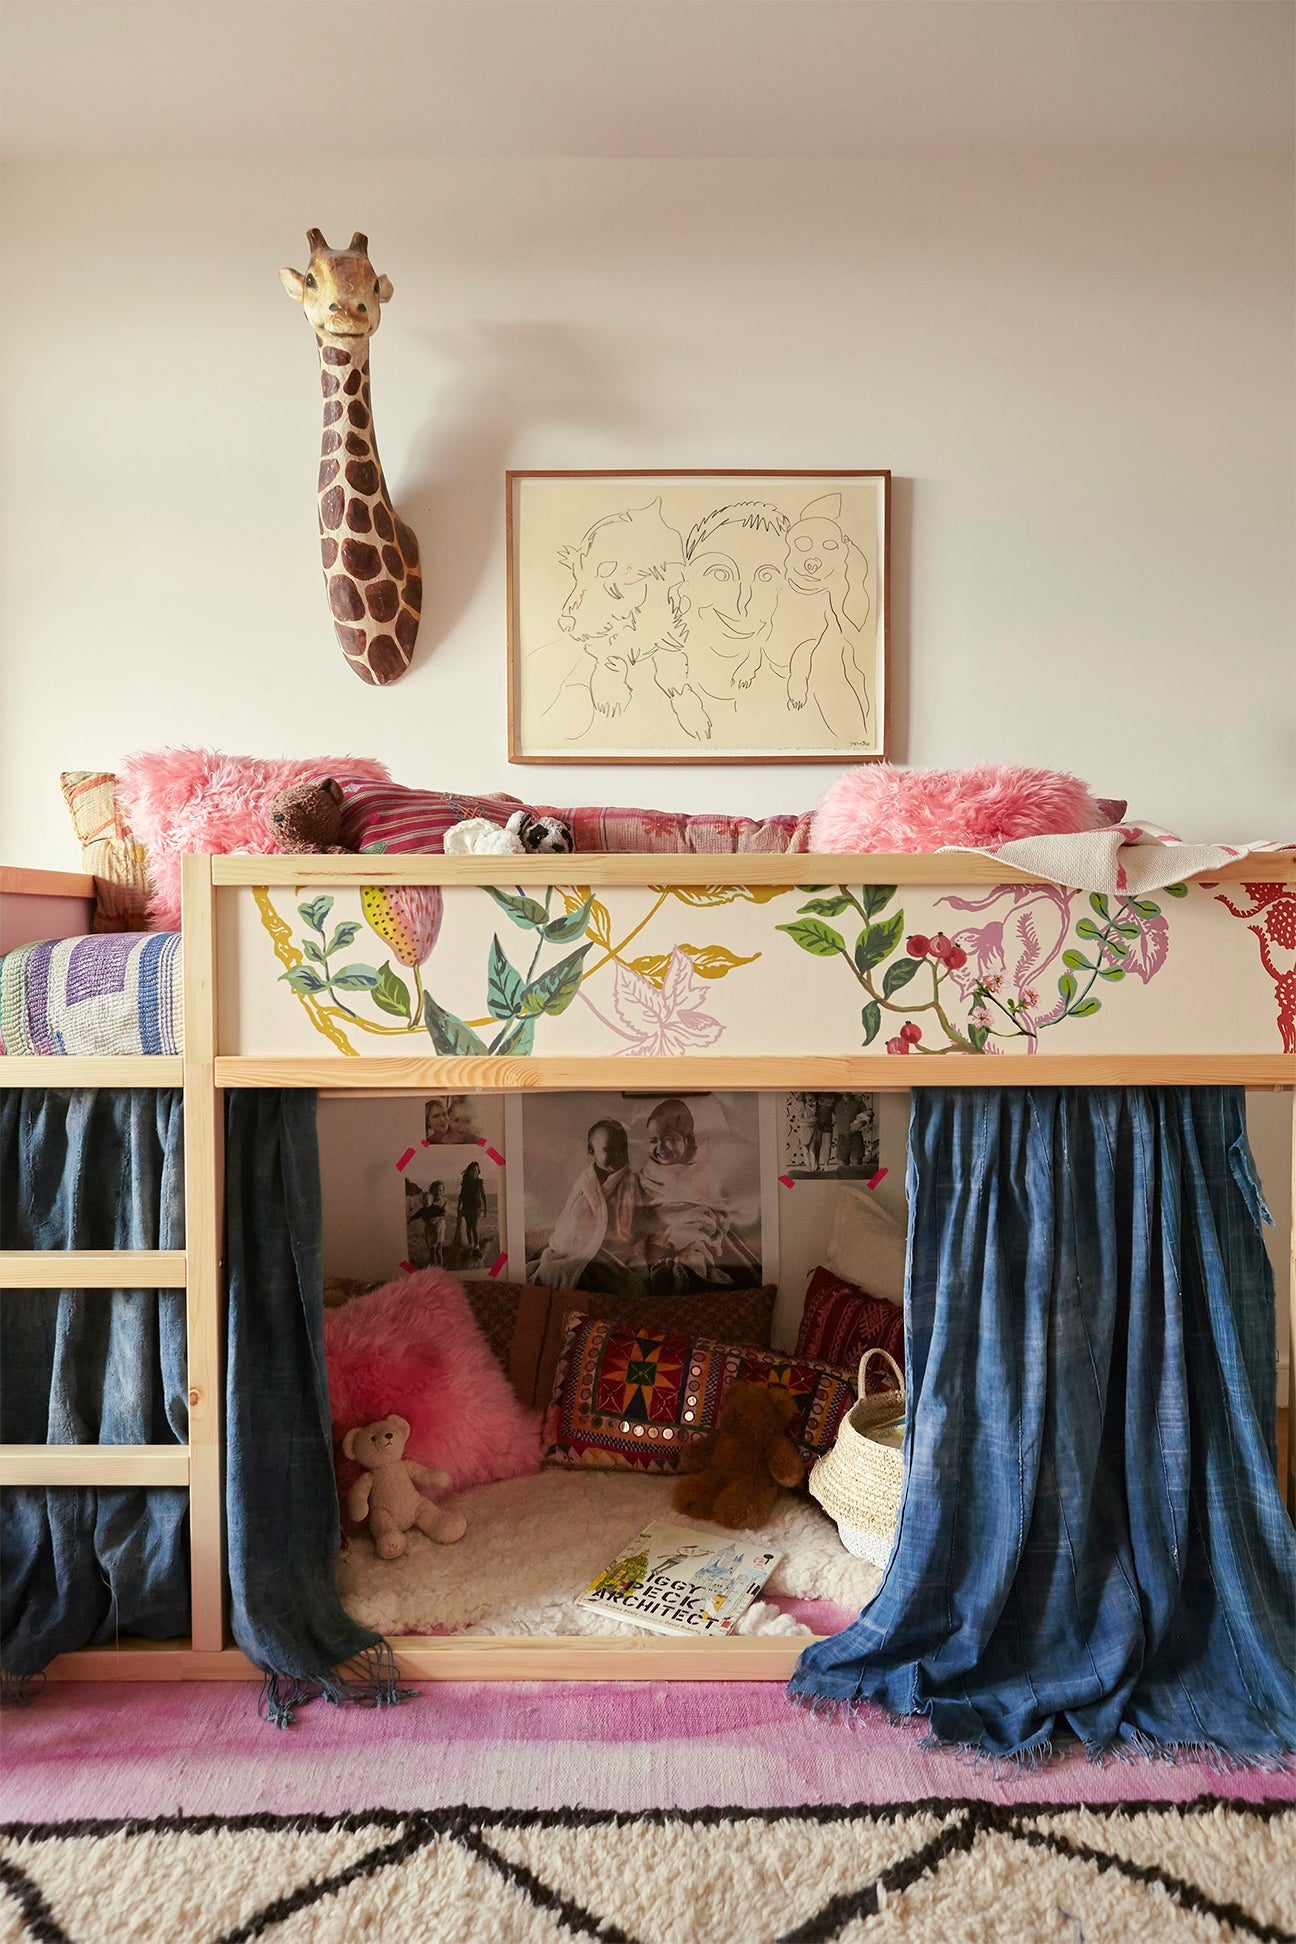 Kids room with lofted bed